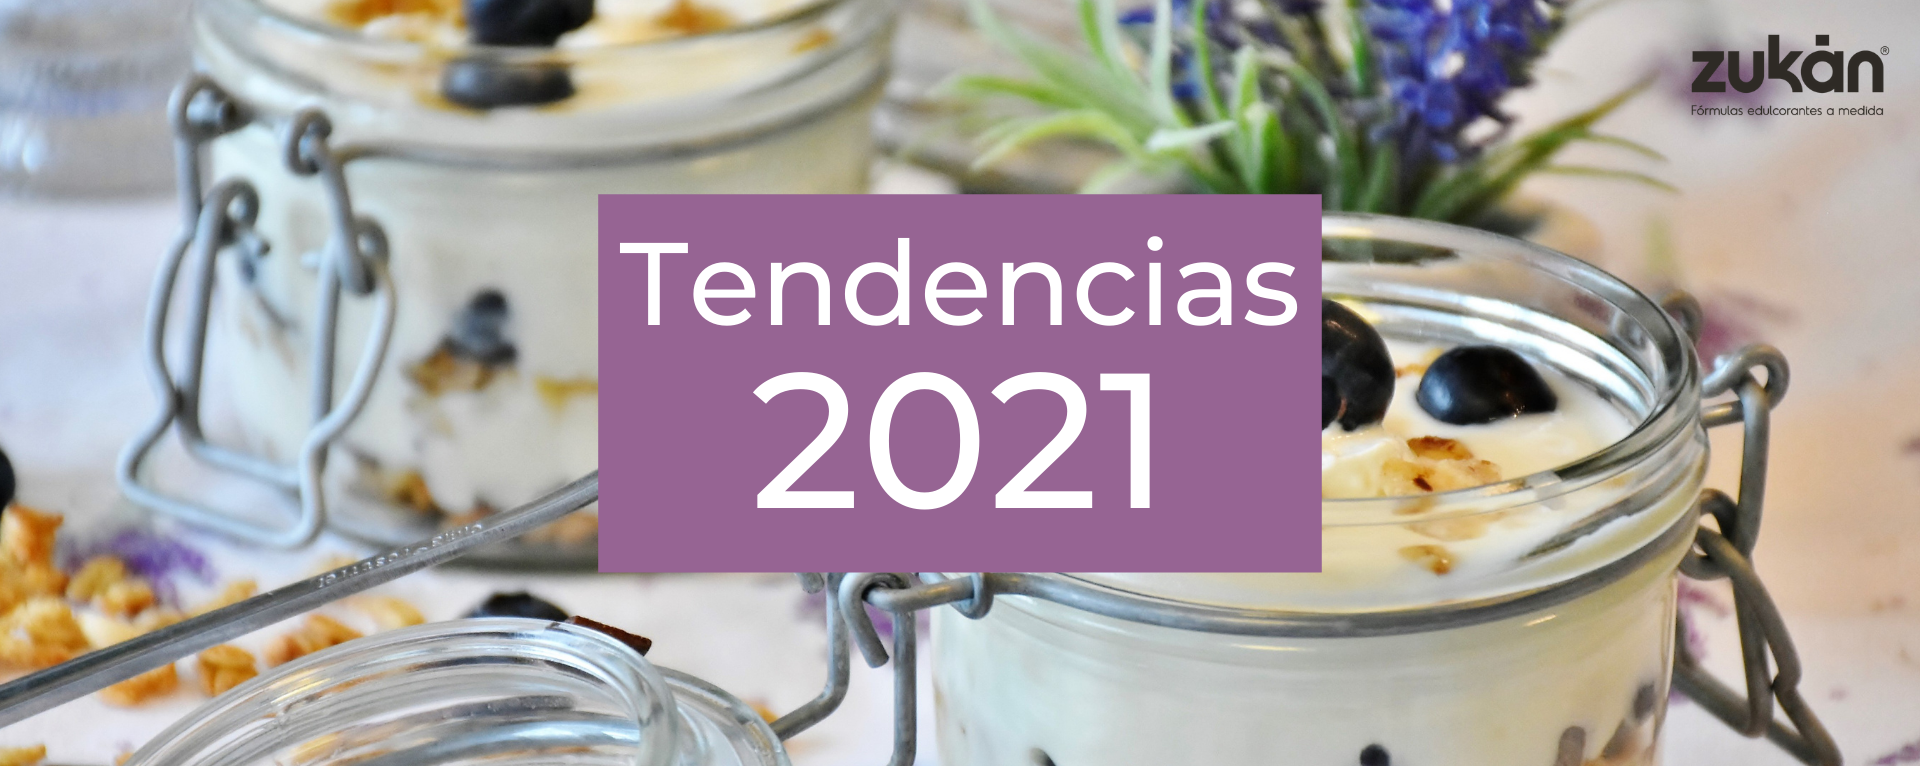 tendencias ingredientes 2021